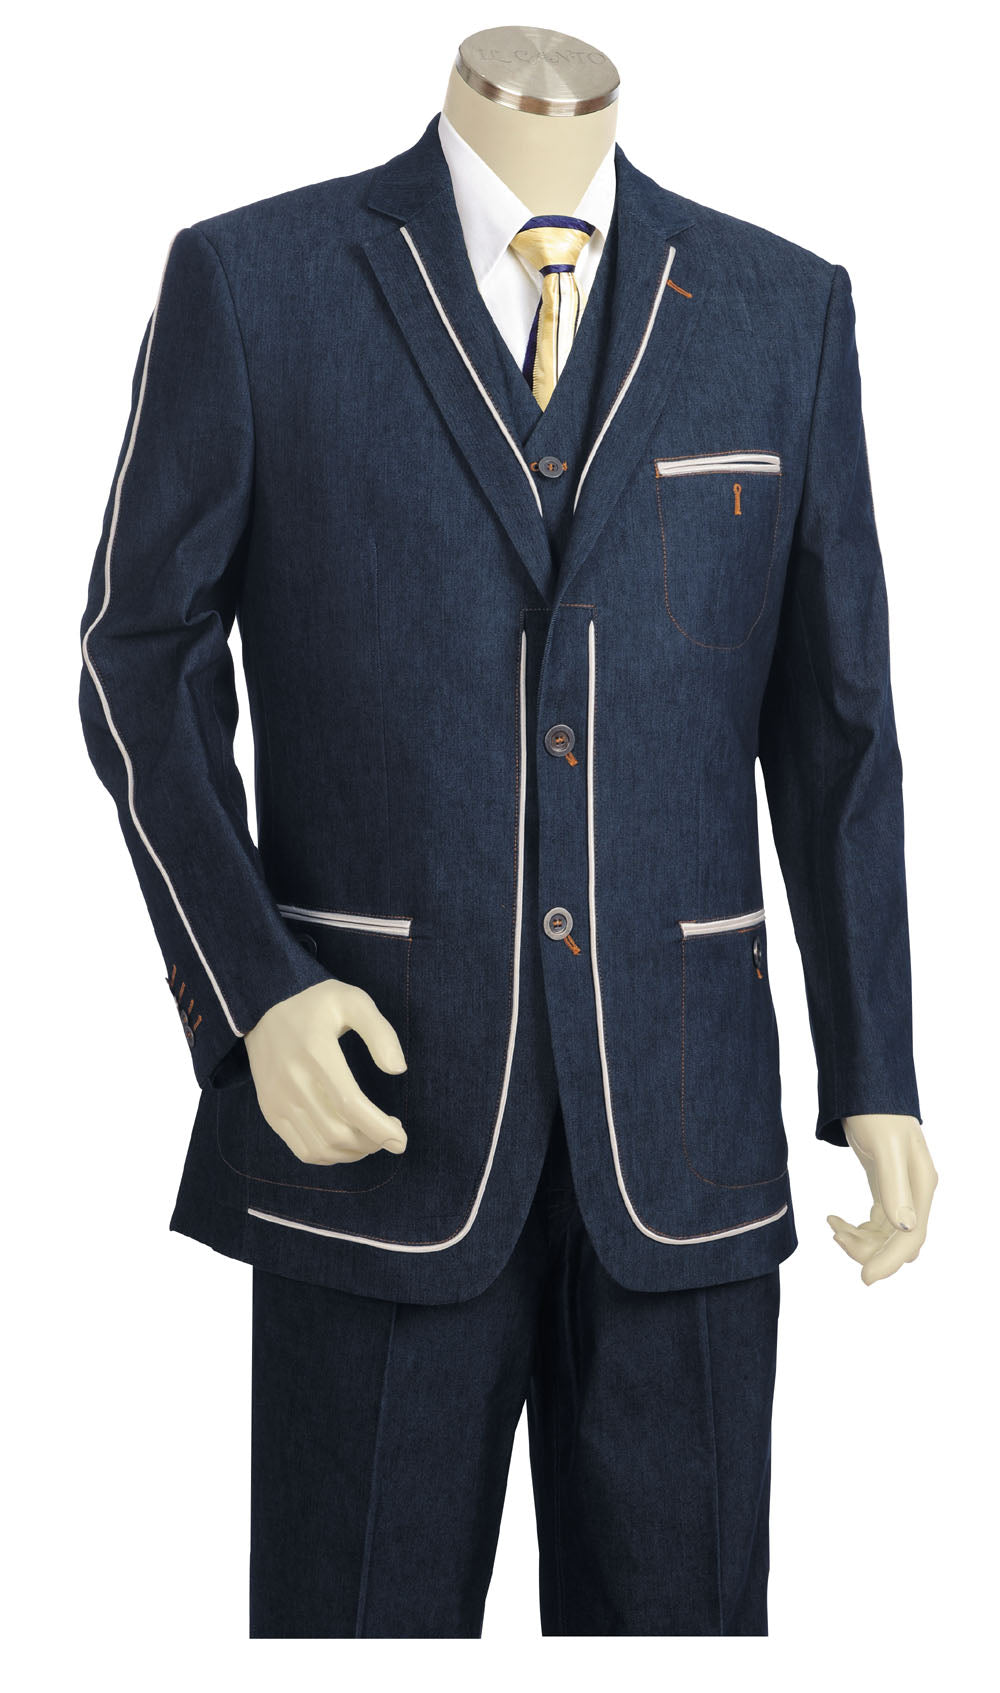 Stylish Contours Denim 3pc Zoot Suit Set - Navy